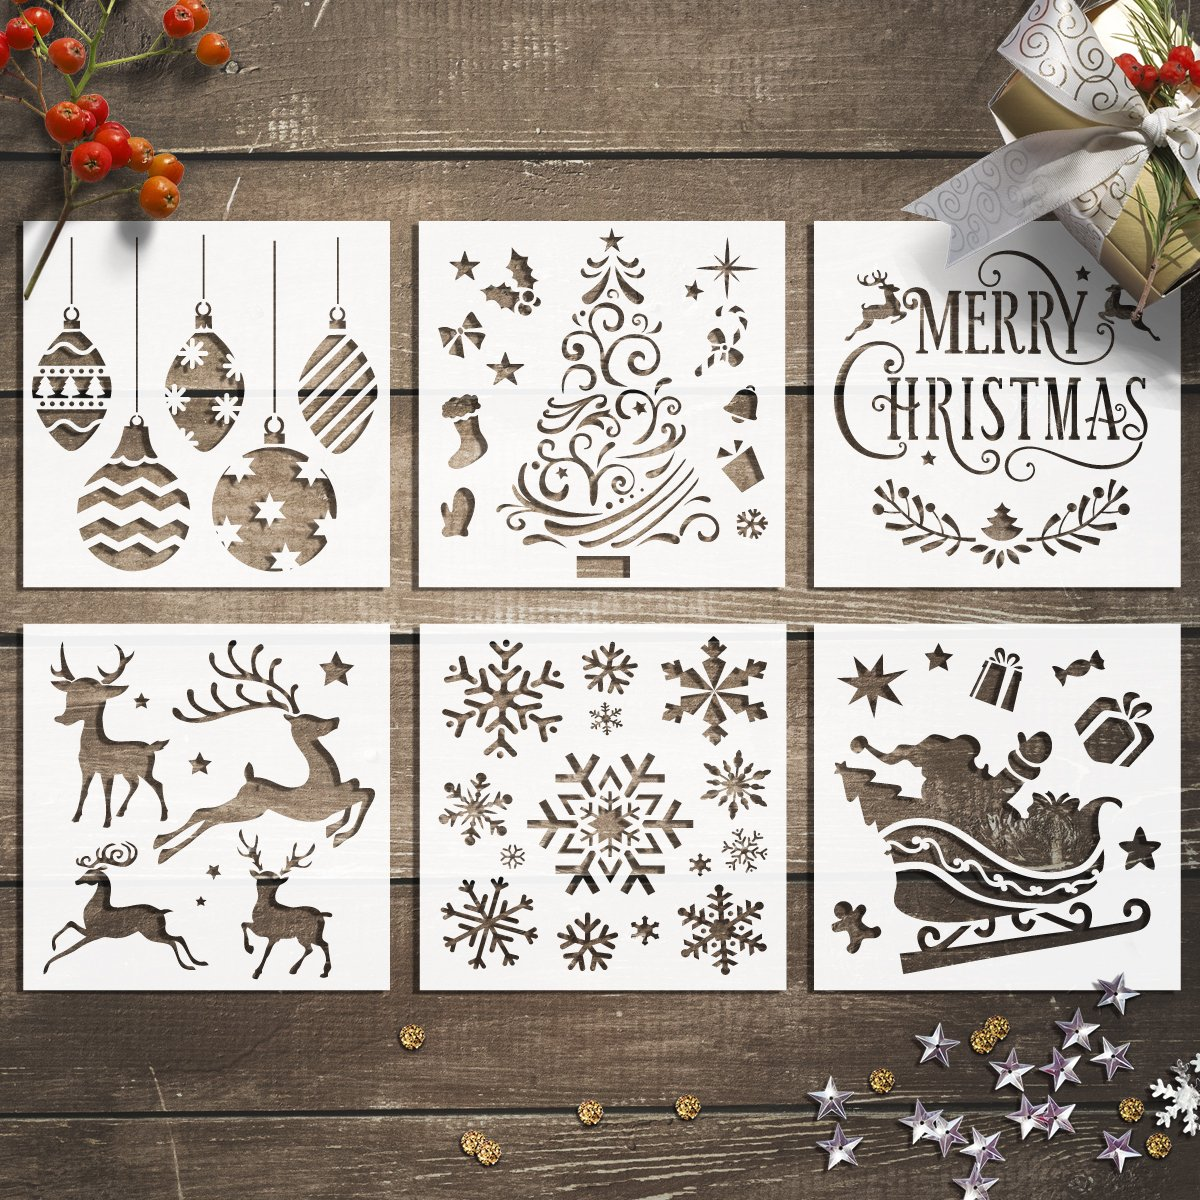 GSS Designs Christmas Stencils Template Pack of 6 -Merry Christmas, Santa Claus, Christmas Tree, Snowflakes, Bulbs, Reindeers for Christmas Decoration 6X6 inch DIY Craft Template Cookie Stencils G GSS Designs